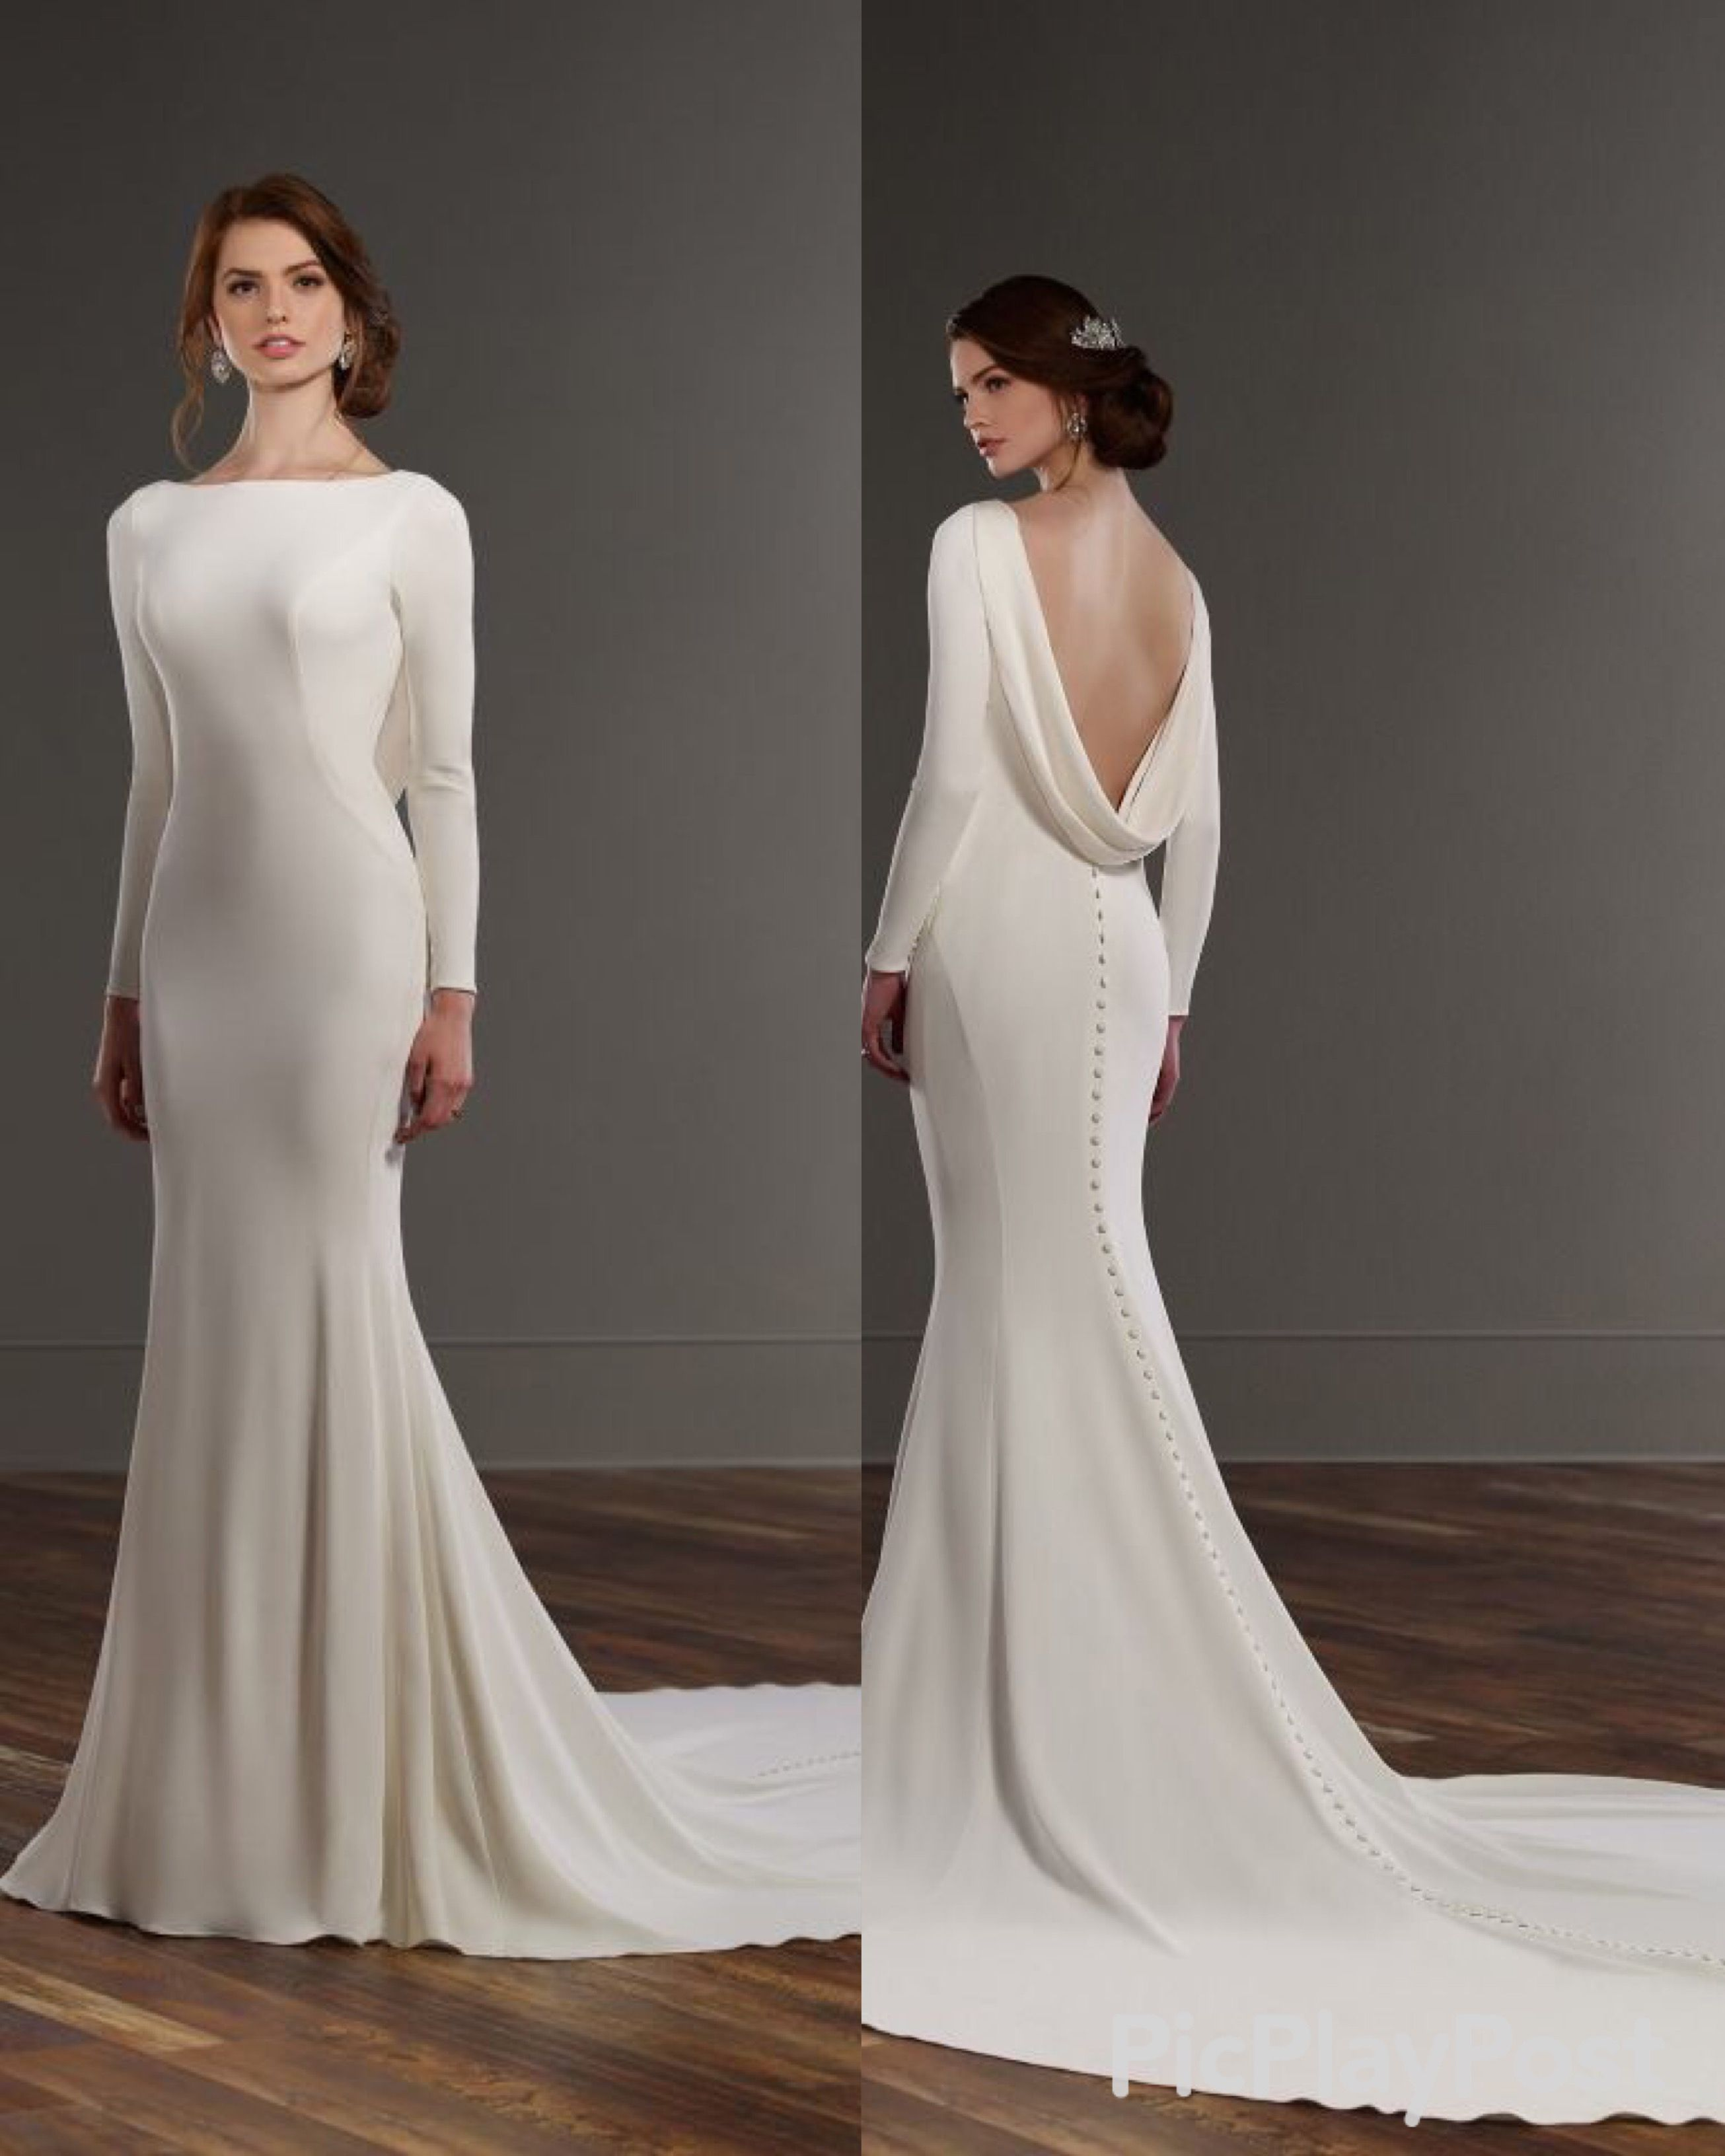 Vintage wedding dresses with sleeves  Long sleeve crepe wedding dress cowl draped back  suknie